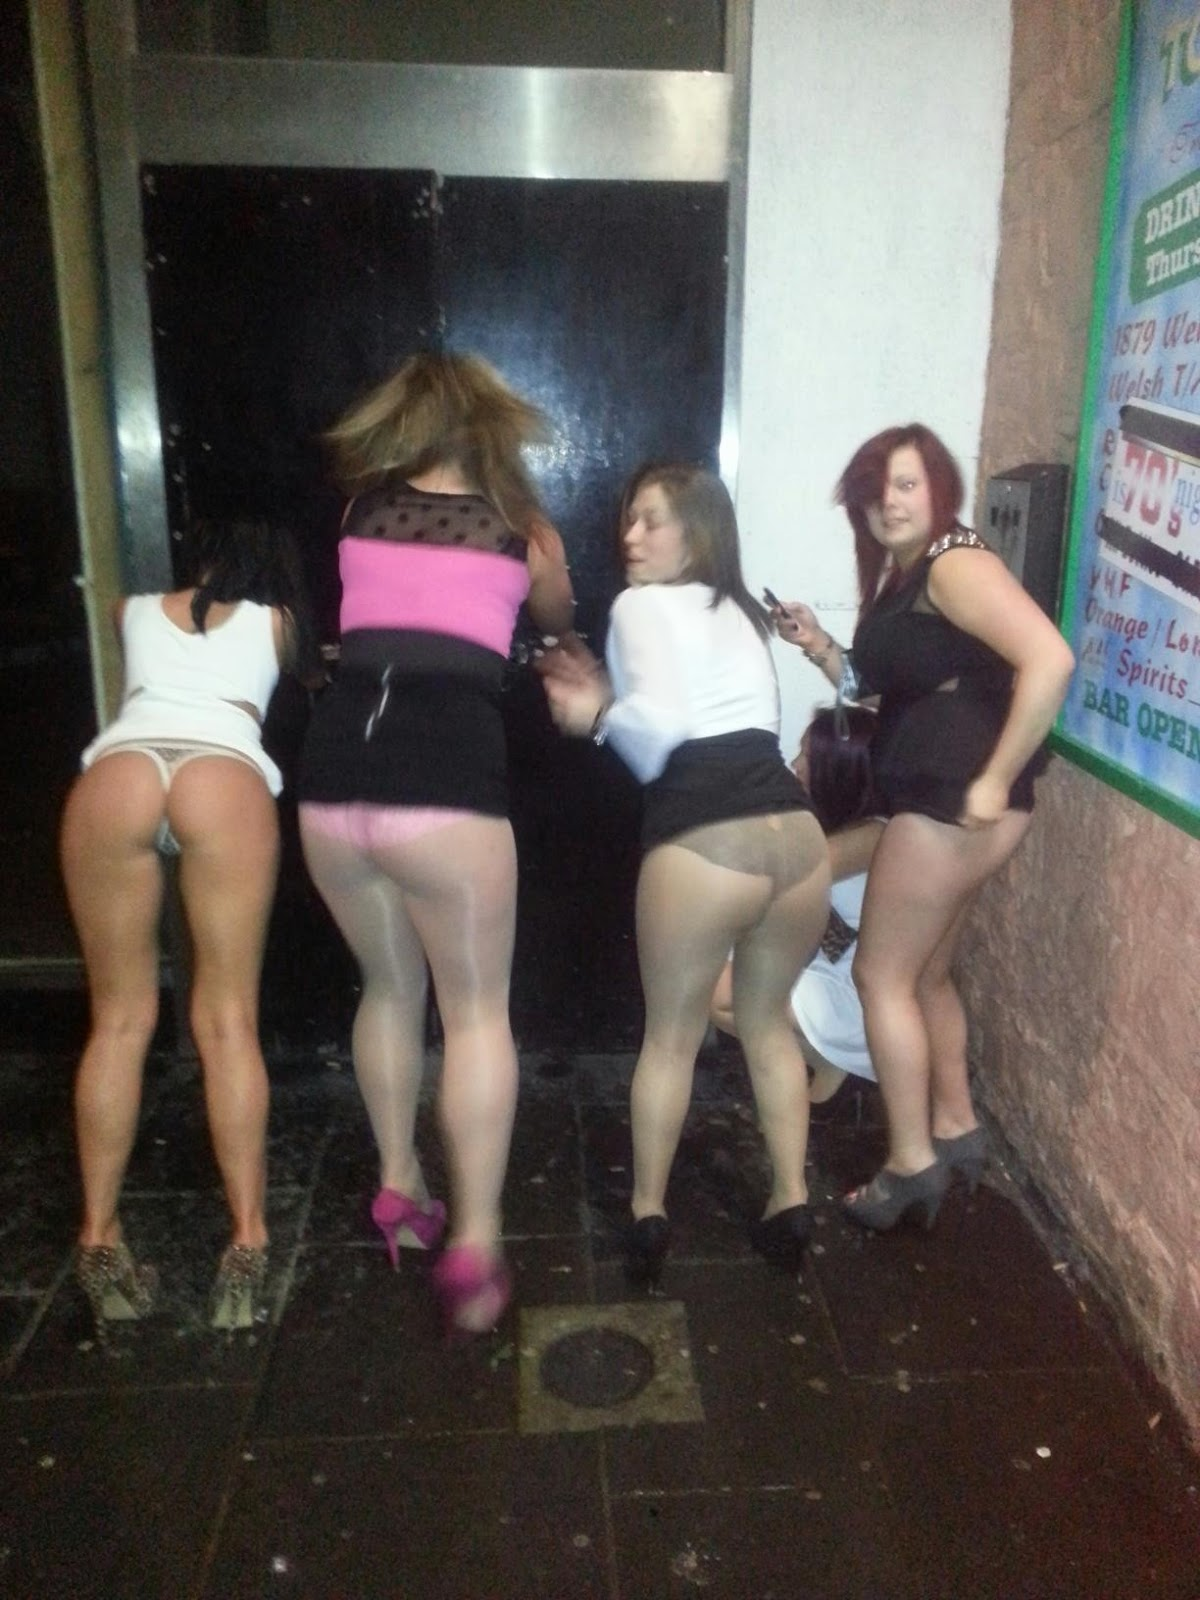 sluts night out